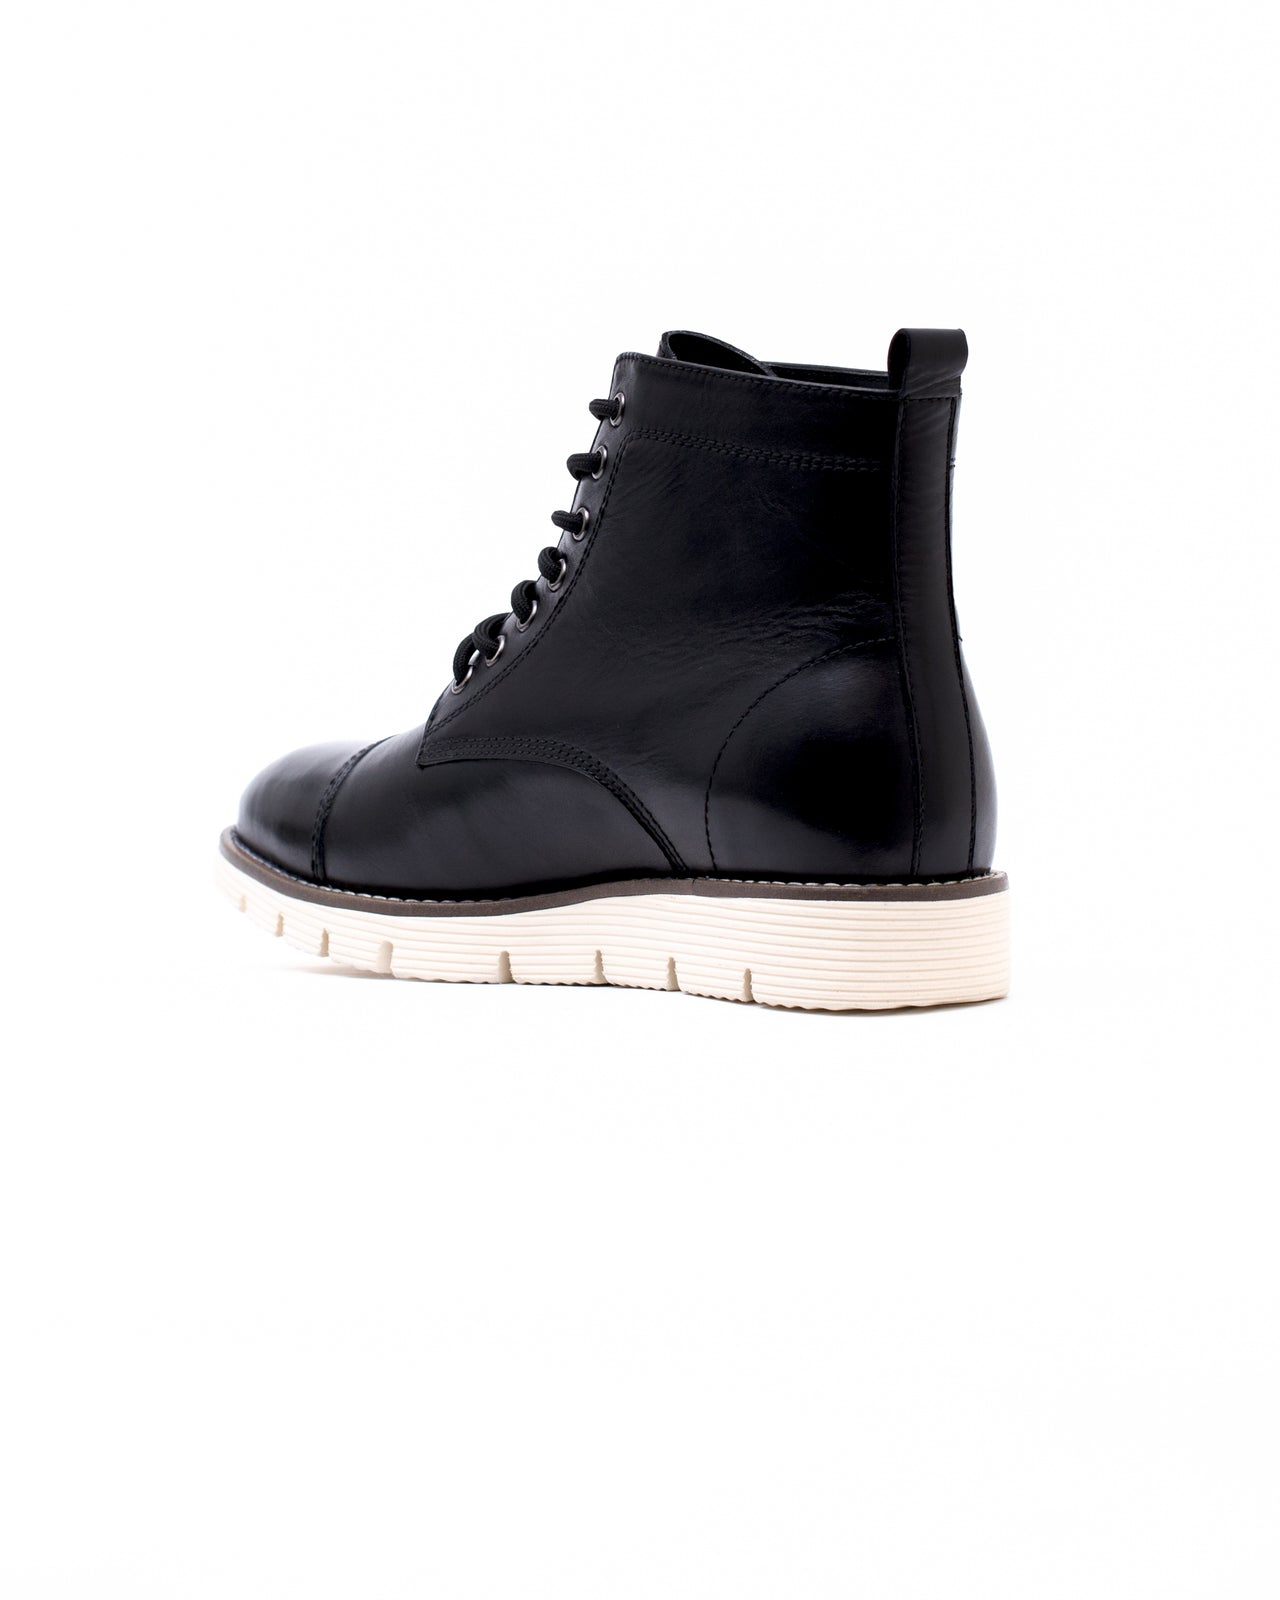 Cap Toe Boot - Color: Black Leather | Black